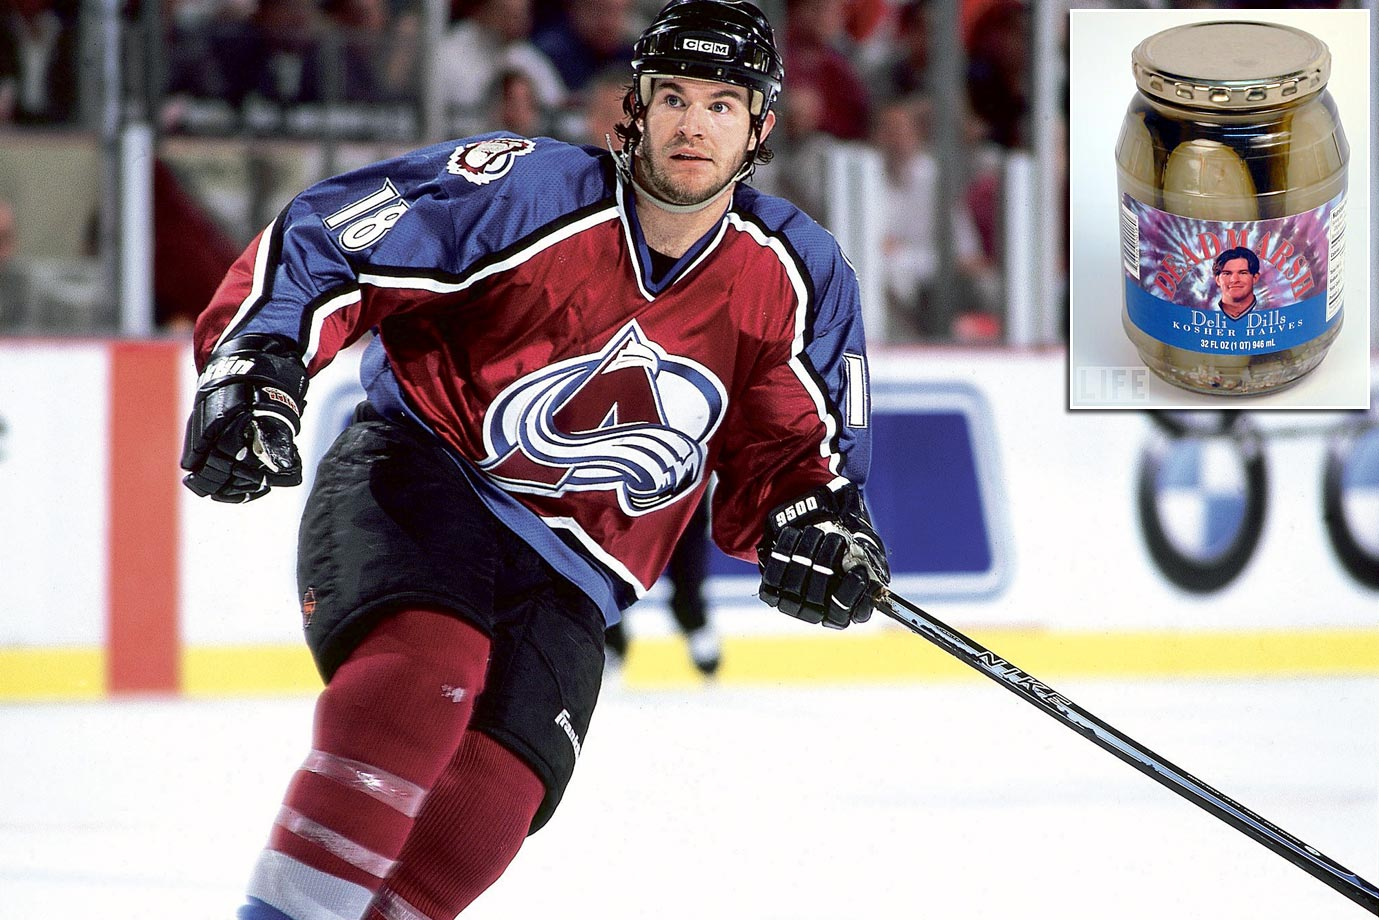 In the 1990s, the Avalanche winger's name skated on a line of deli dills (kosher, yet!), pickle pucks (something to break your teeth on) and steak sauce.